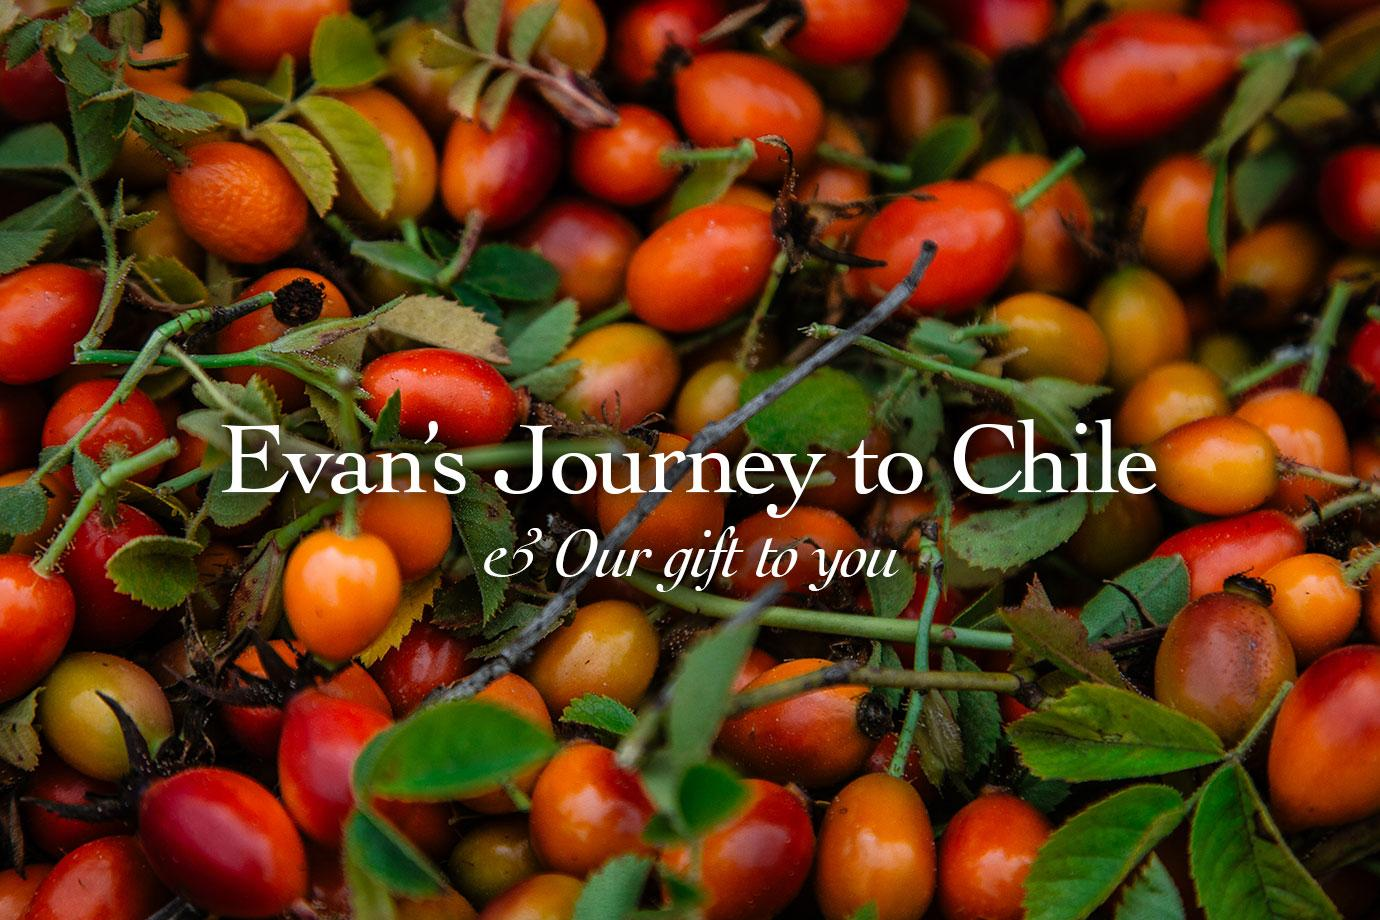 Our Rosehip Story ~ Evans Journey to the Chilean Wilderness